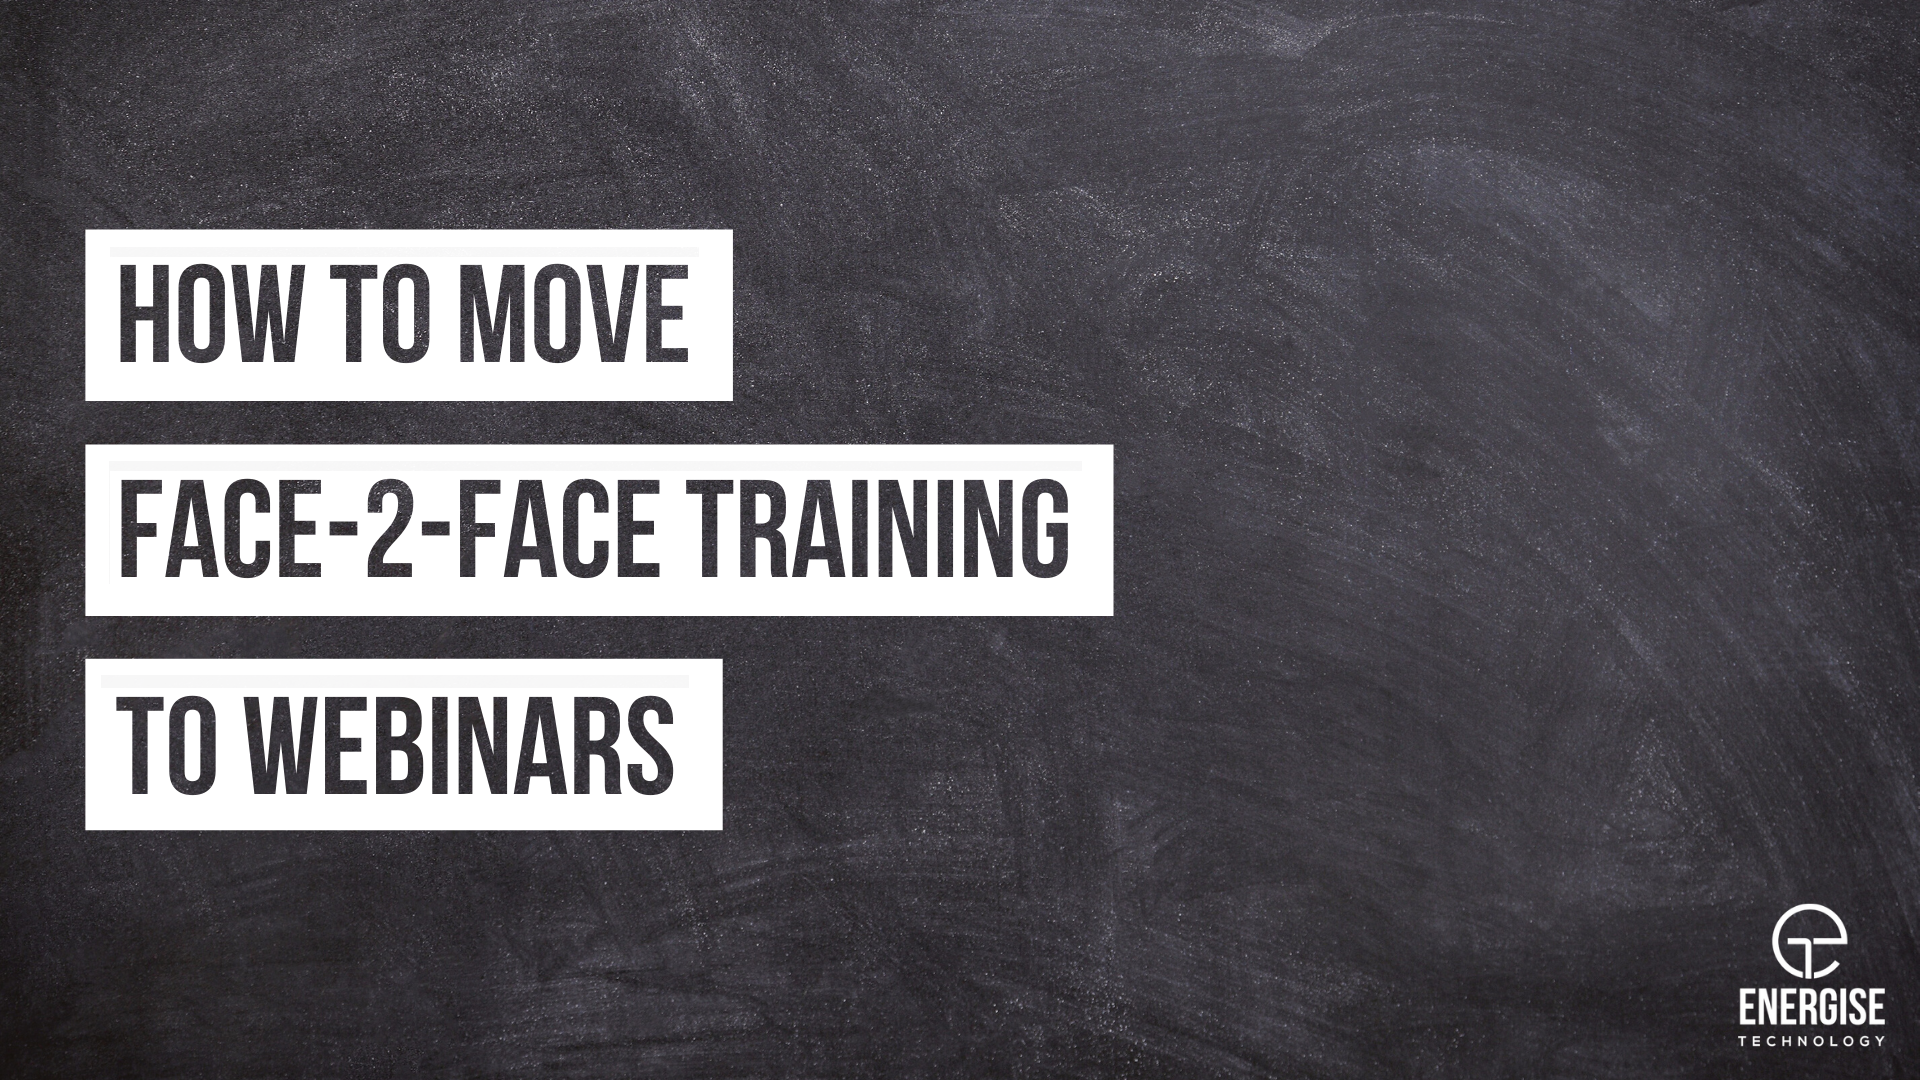 How to Move Face-2-Face Training to Webinars